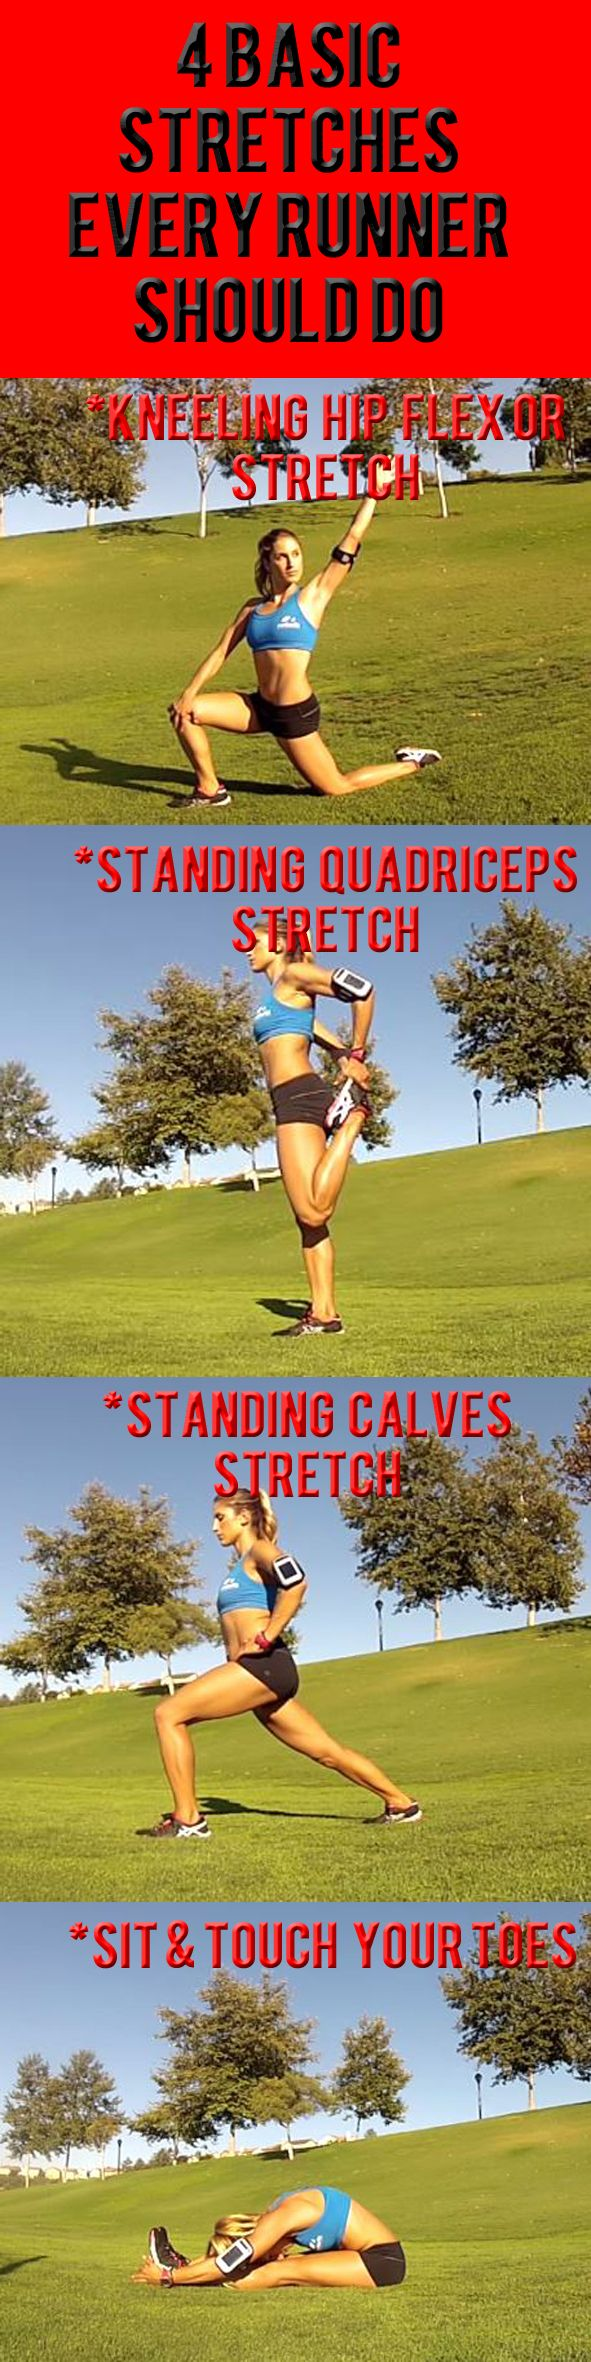 *AFTER RUNNING STRETCHES: Hold each stretch for 30 seconds to ensure that your muscles fully release and get a great stretch. This takes less than 5 minutes of your time and its SO important. #running #stretching #runningadvice #runningtips